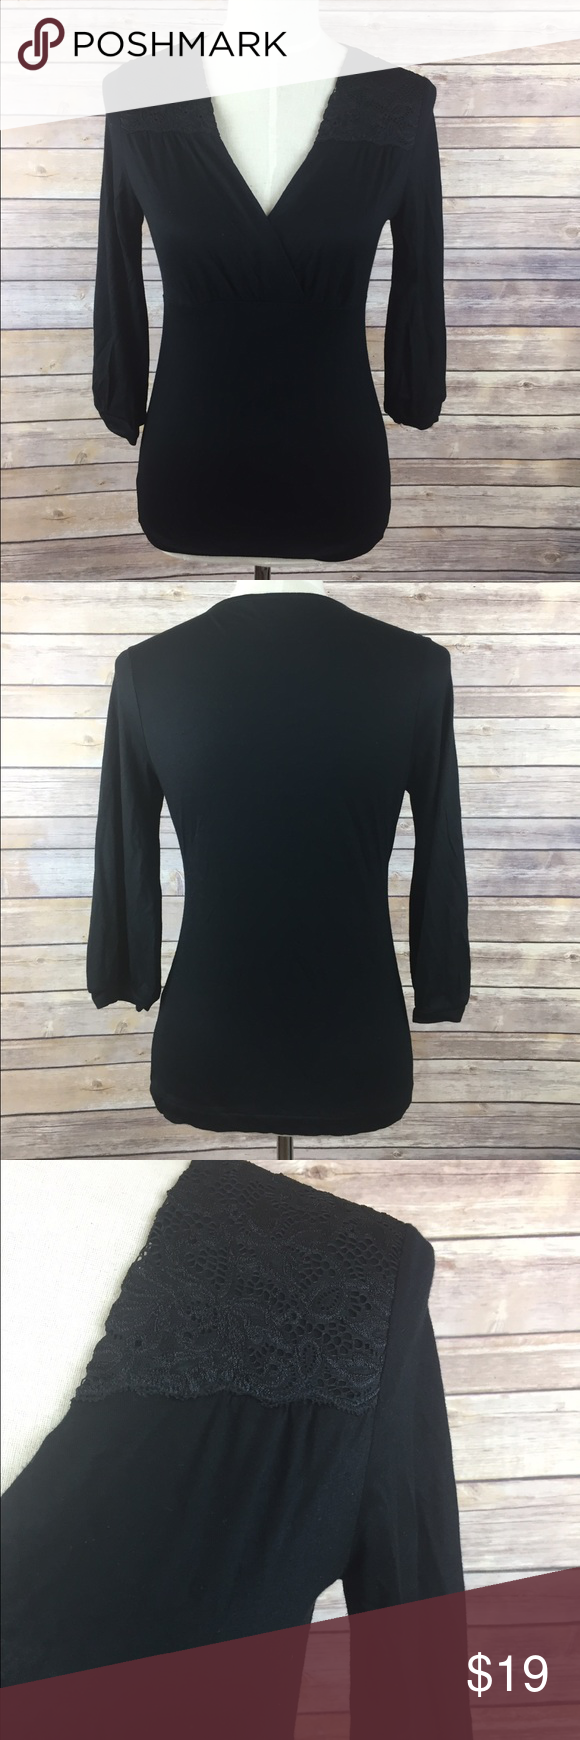 Banana Republic 3/4 Sleeve Top Solid black with a y-neck and Lace shoulder detail. Banana Republic Tops Blouses